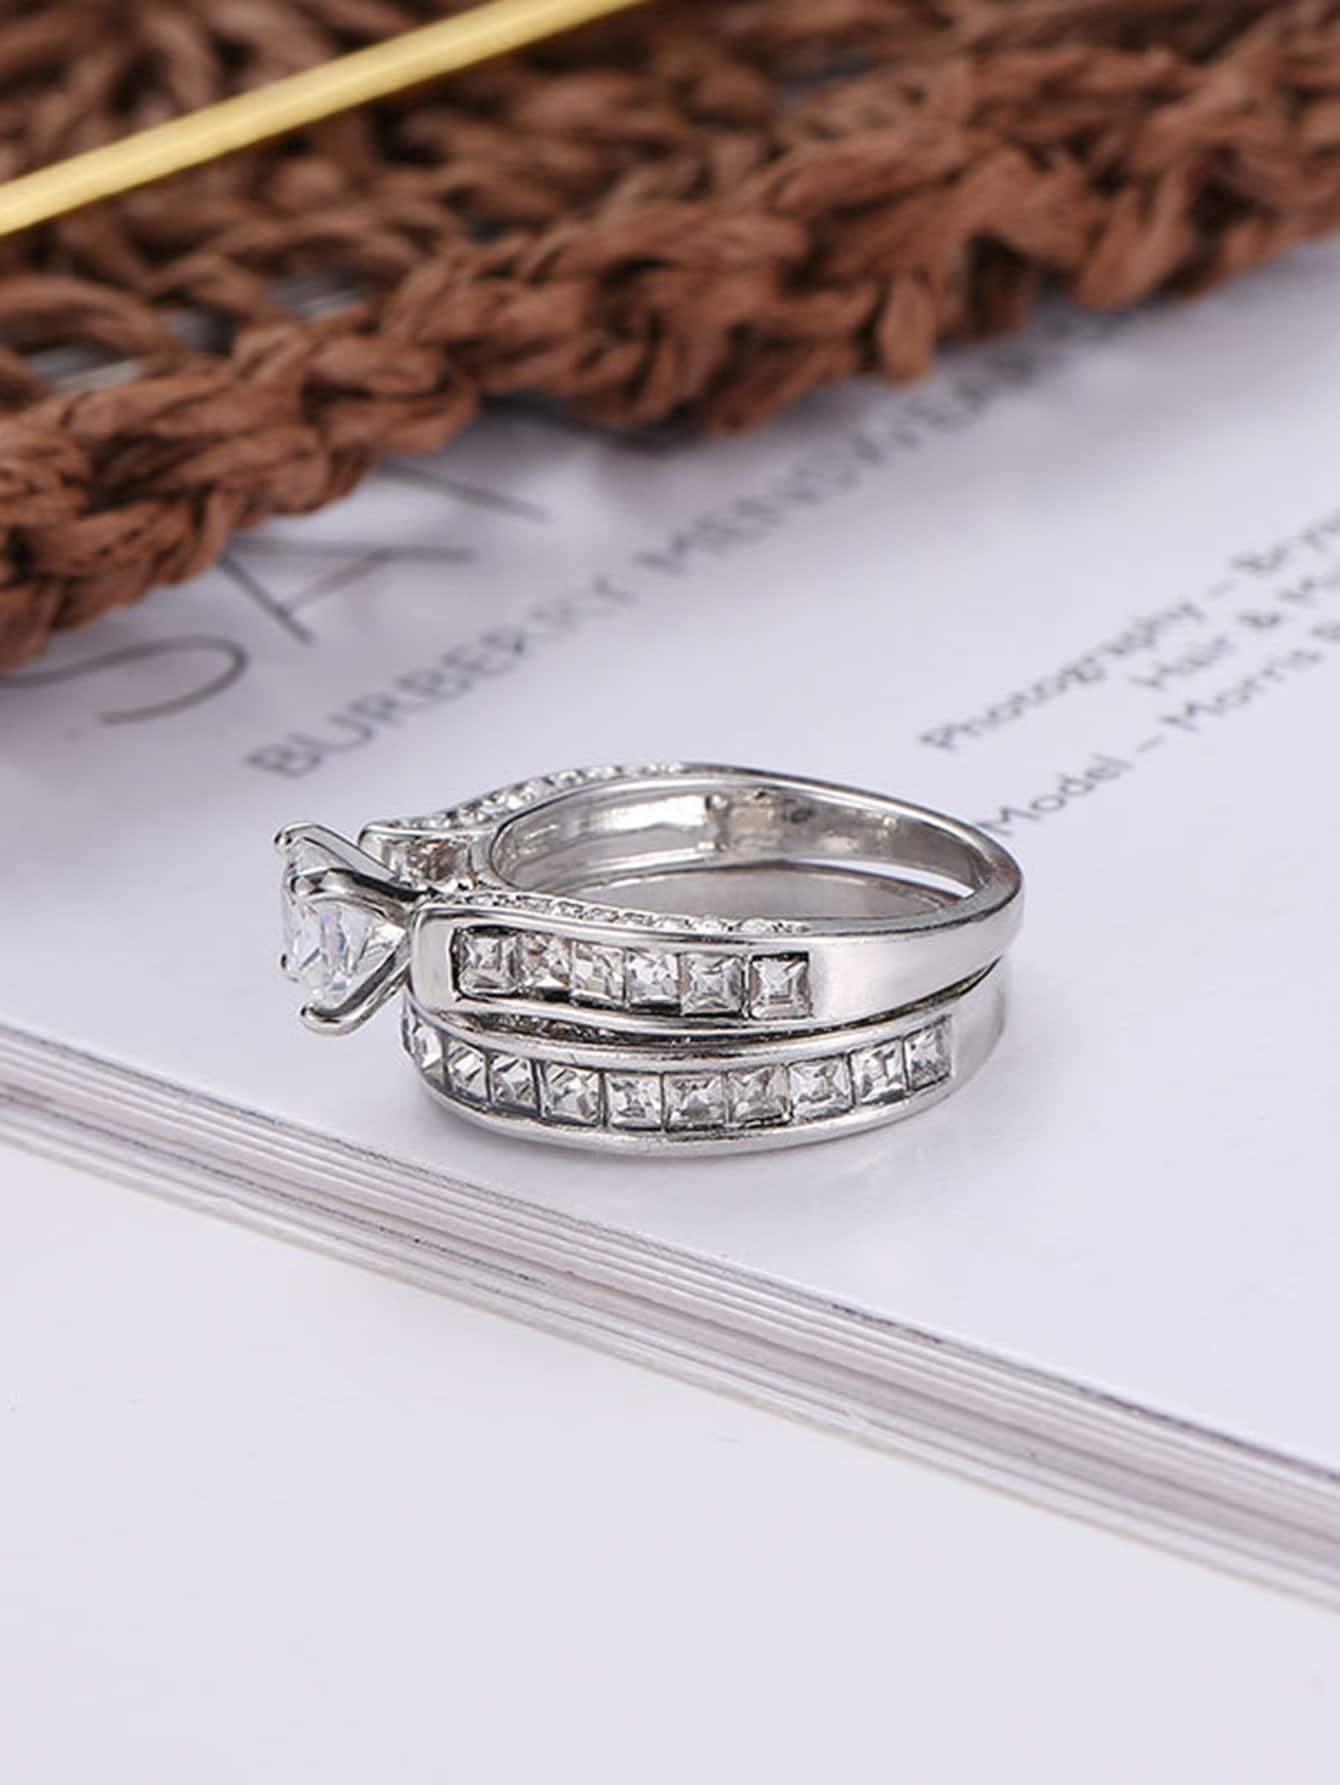 Rhinestone Engraved Ring Set 2pcs